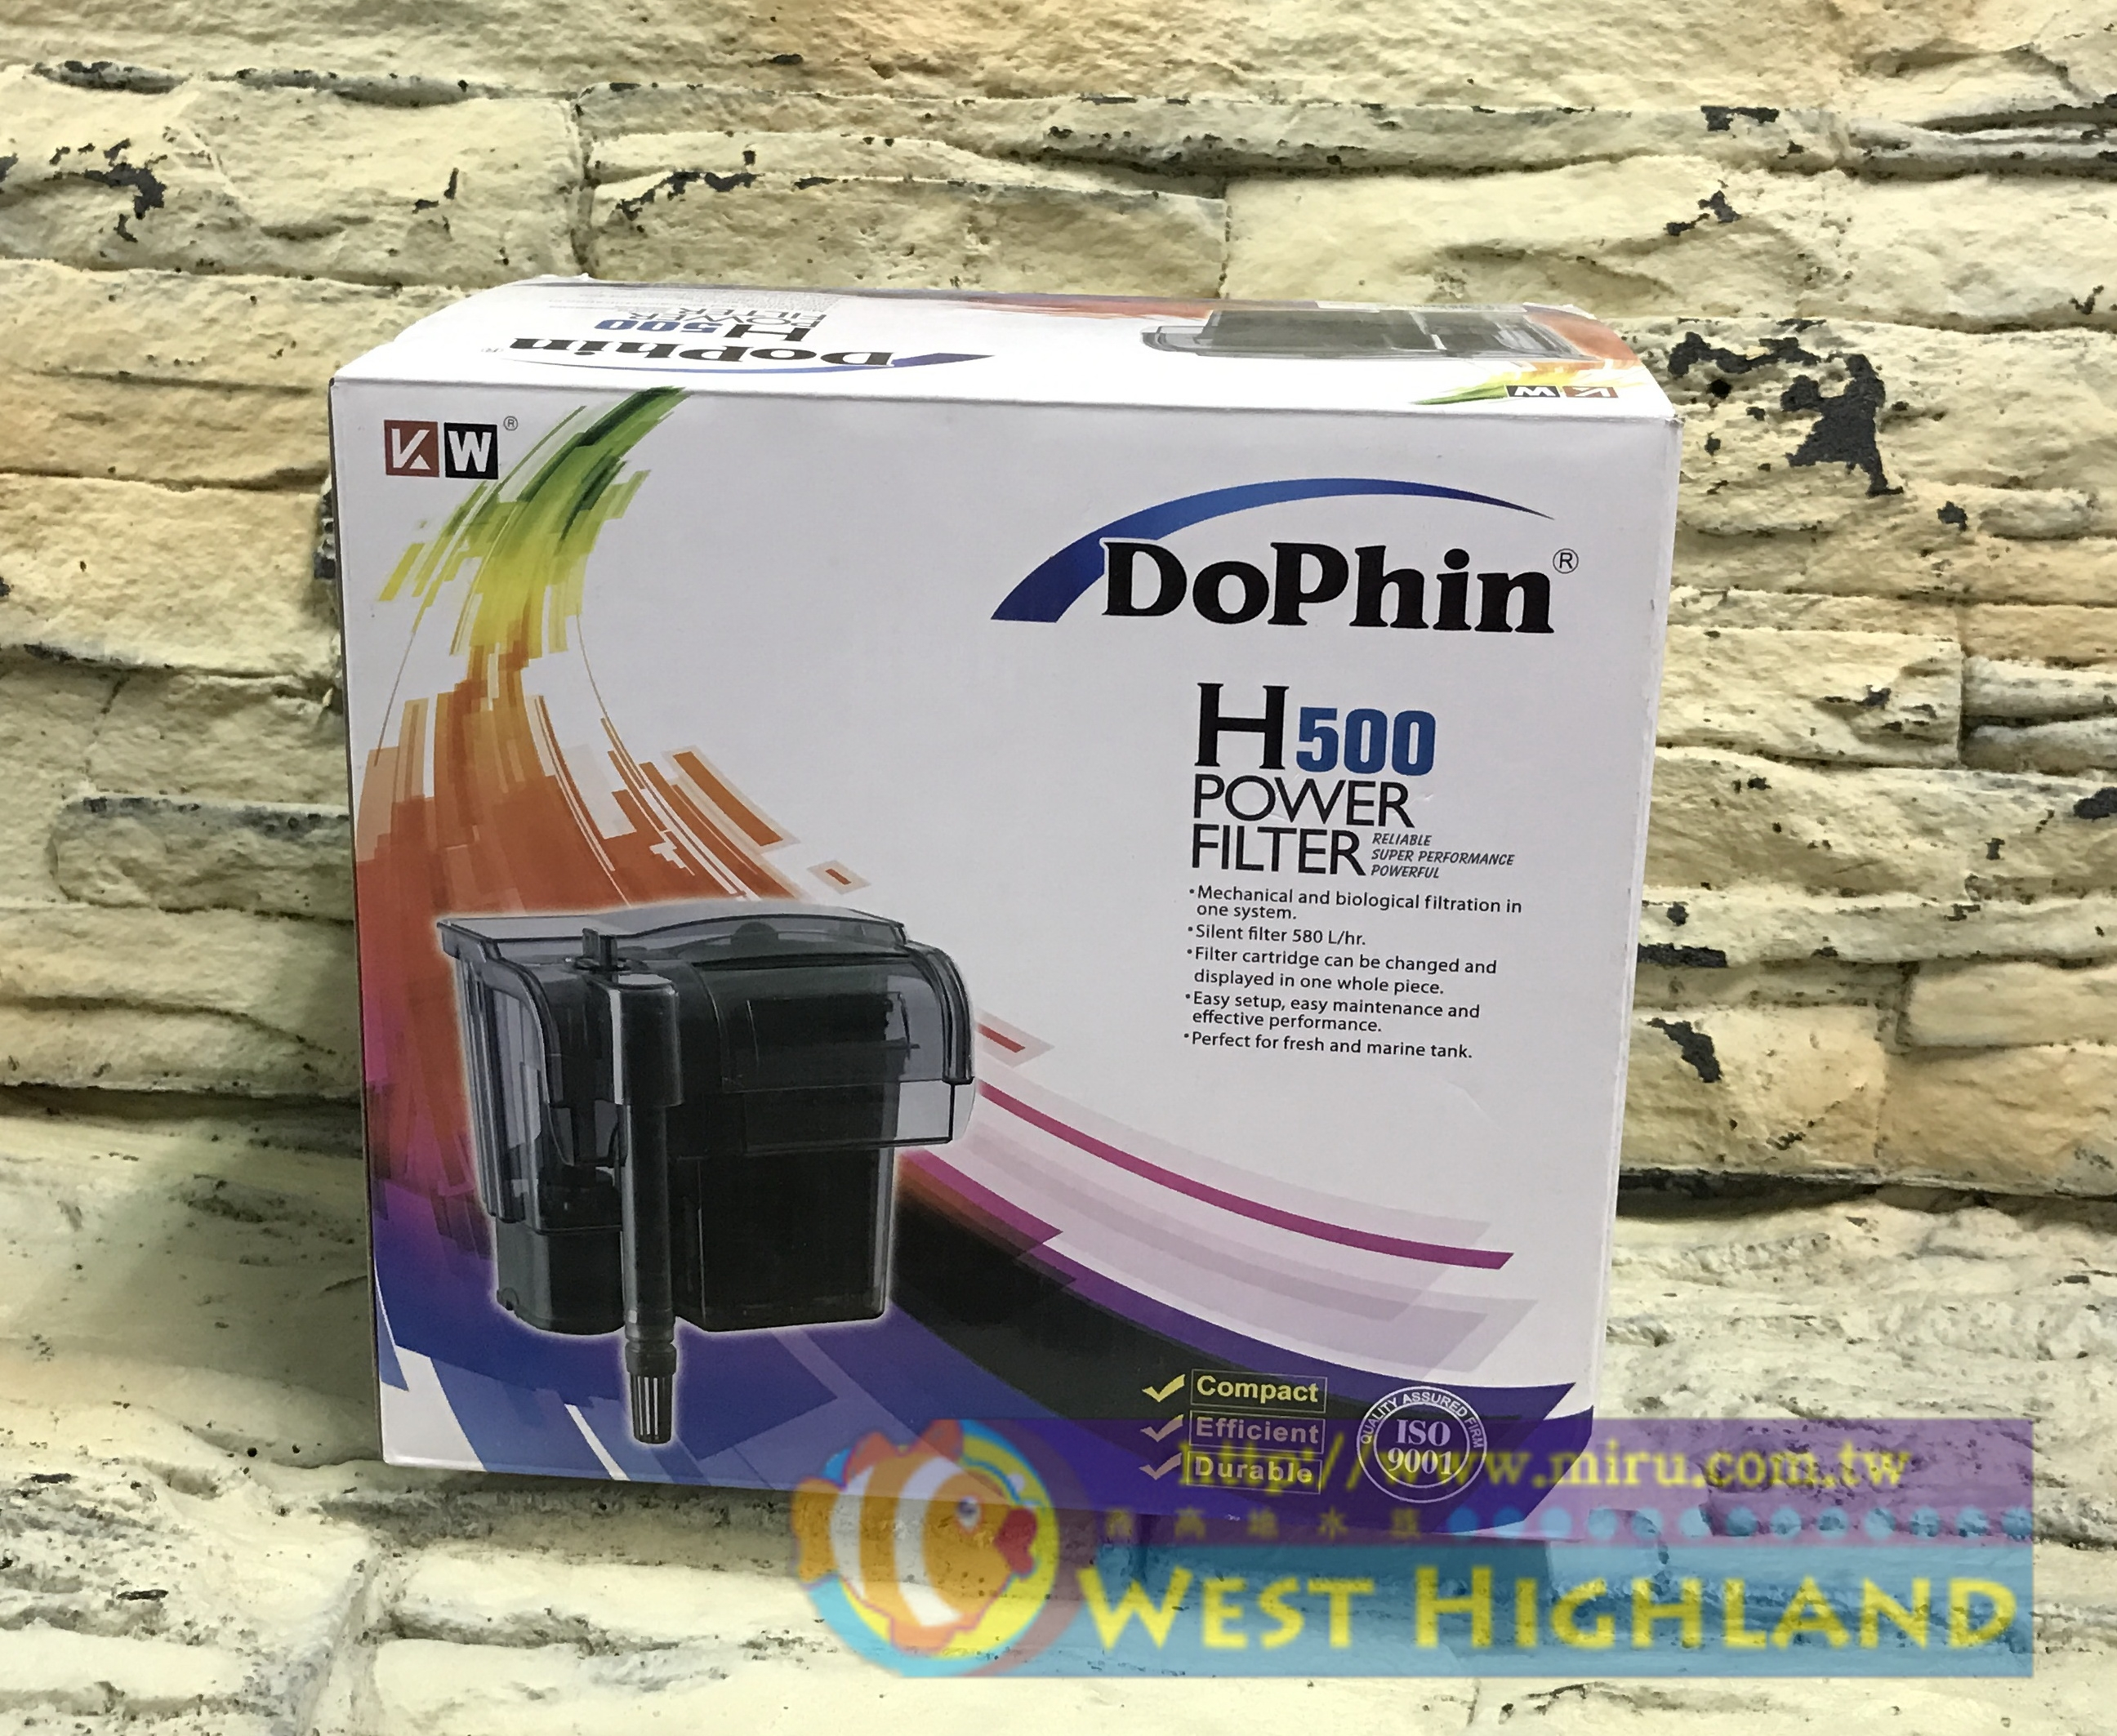 Dophin 海豚 外掛過濾器(H500)Power Fiter